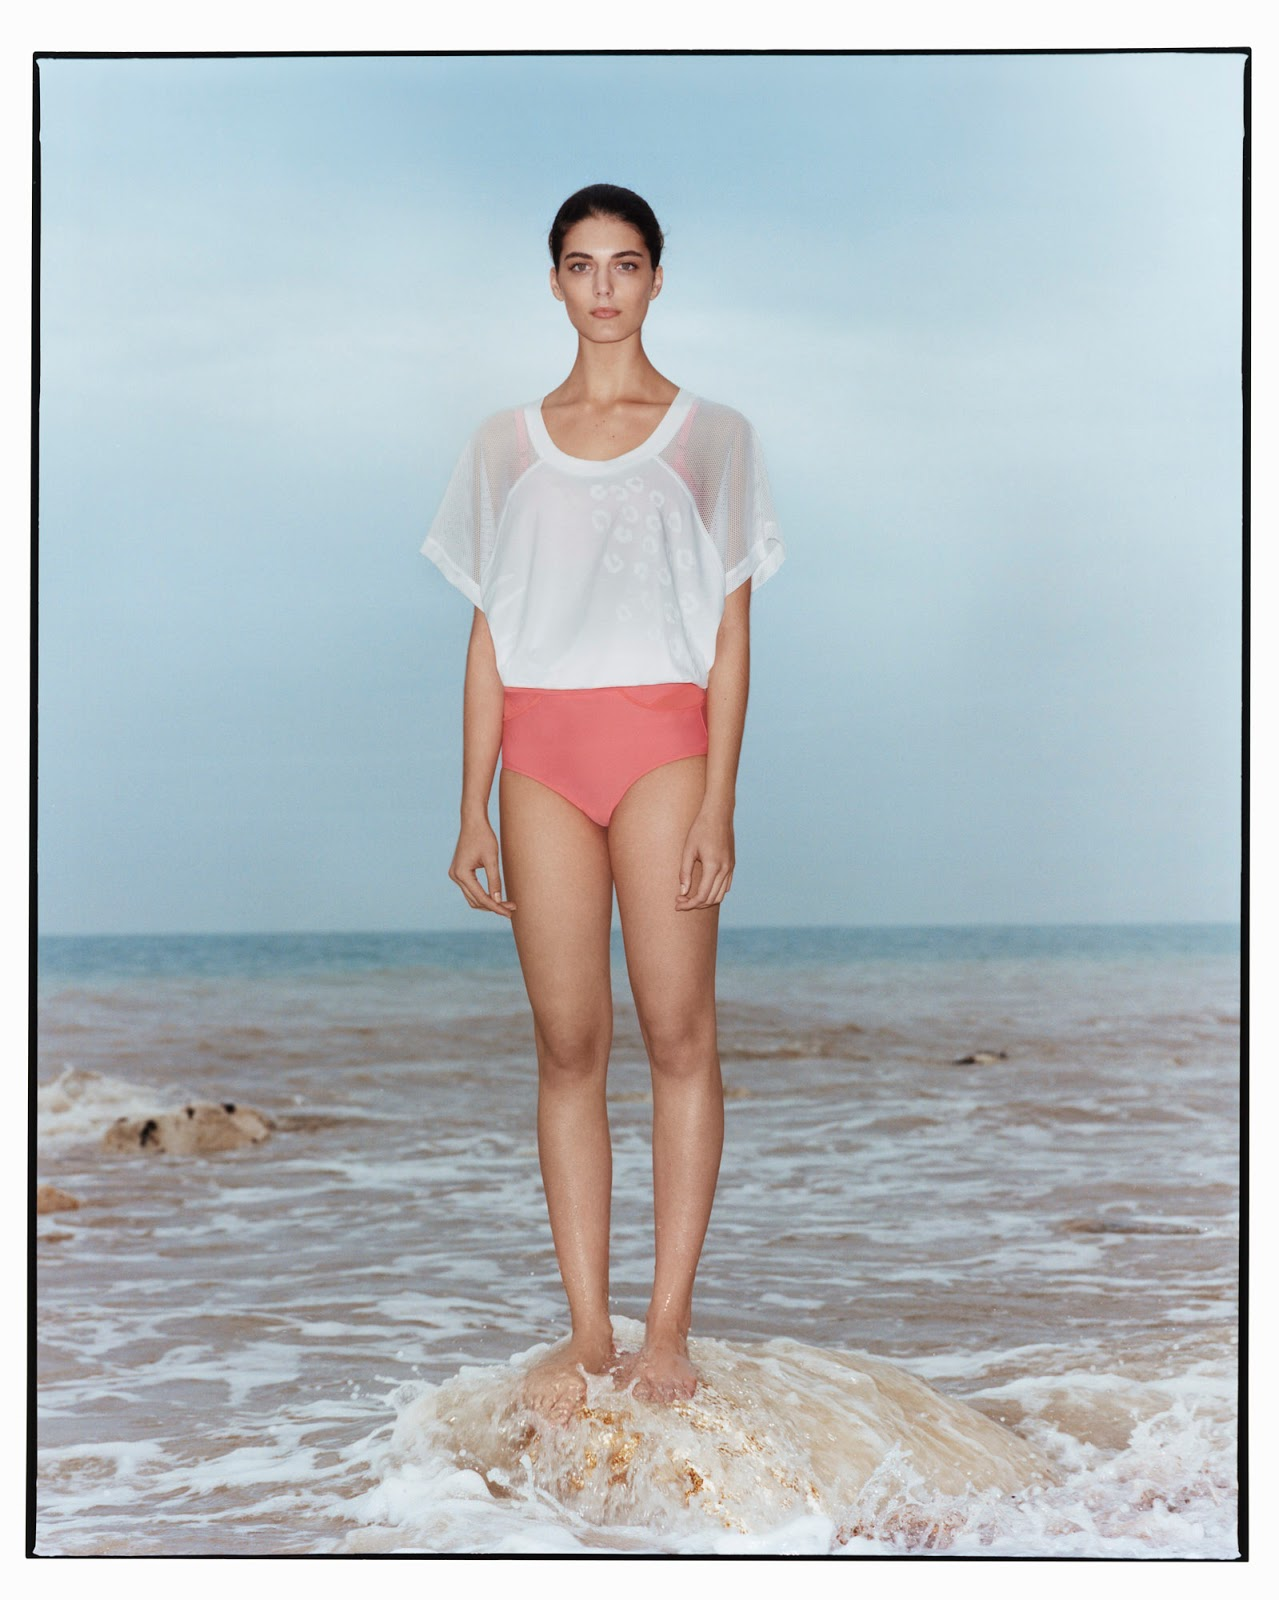 Adidas by Stella McCartney spring summer 2014 lookbook